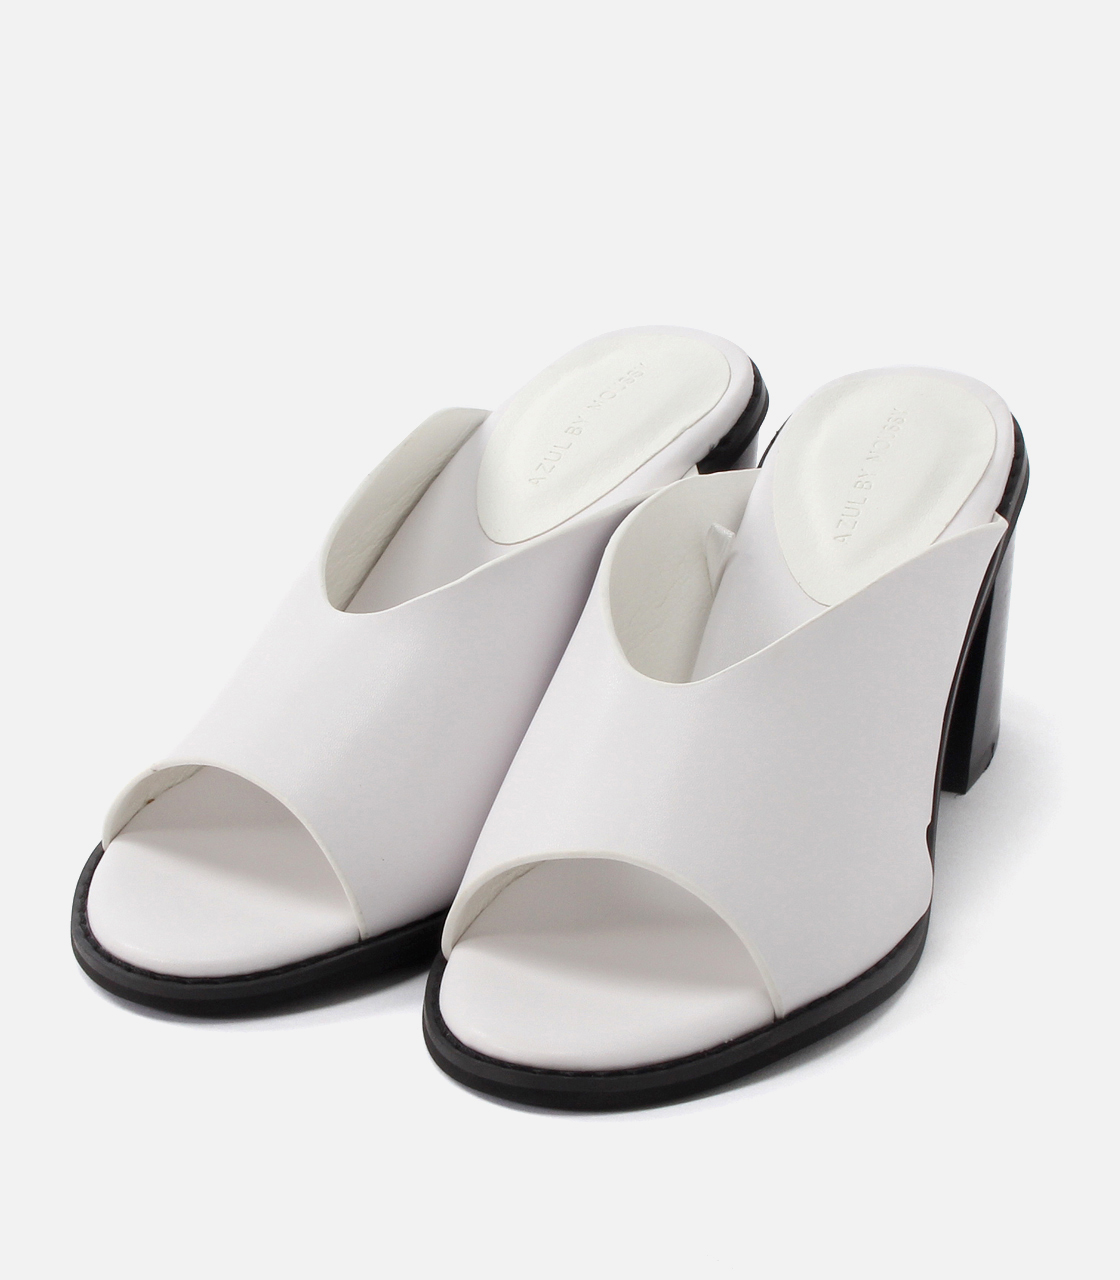 【AZUL BY MOUSSY】V CUT SANDALS 詳細画像 柄WHT 1